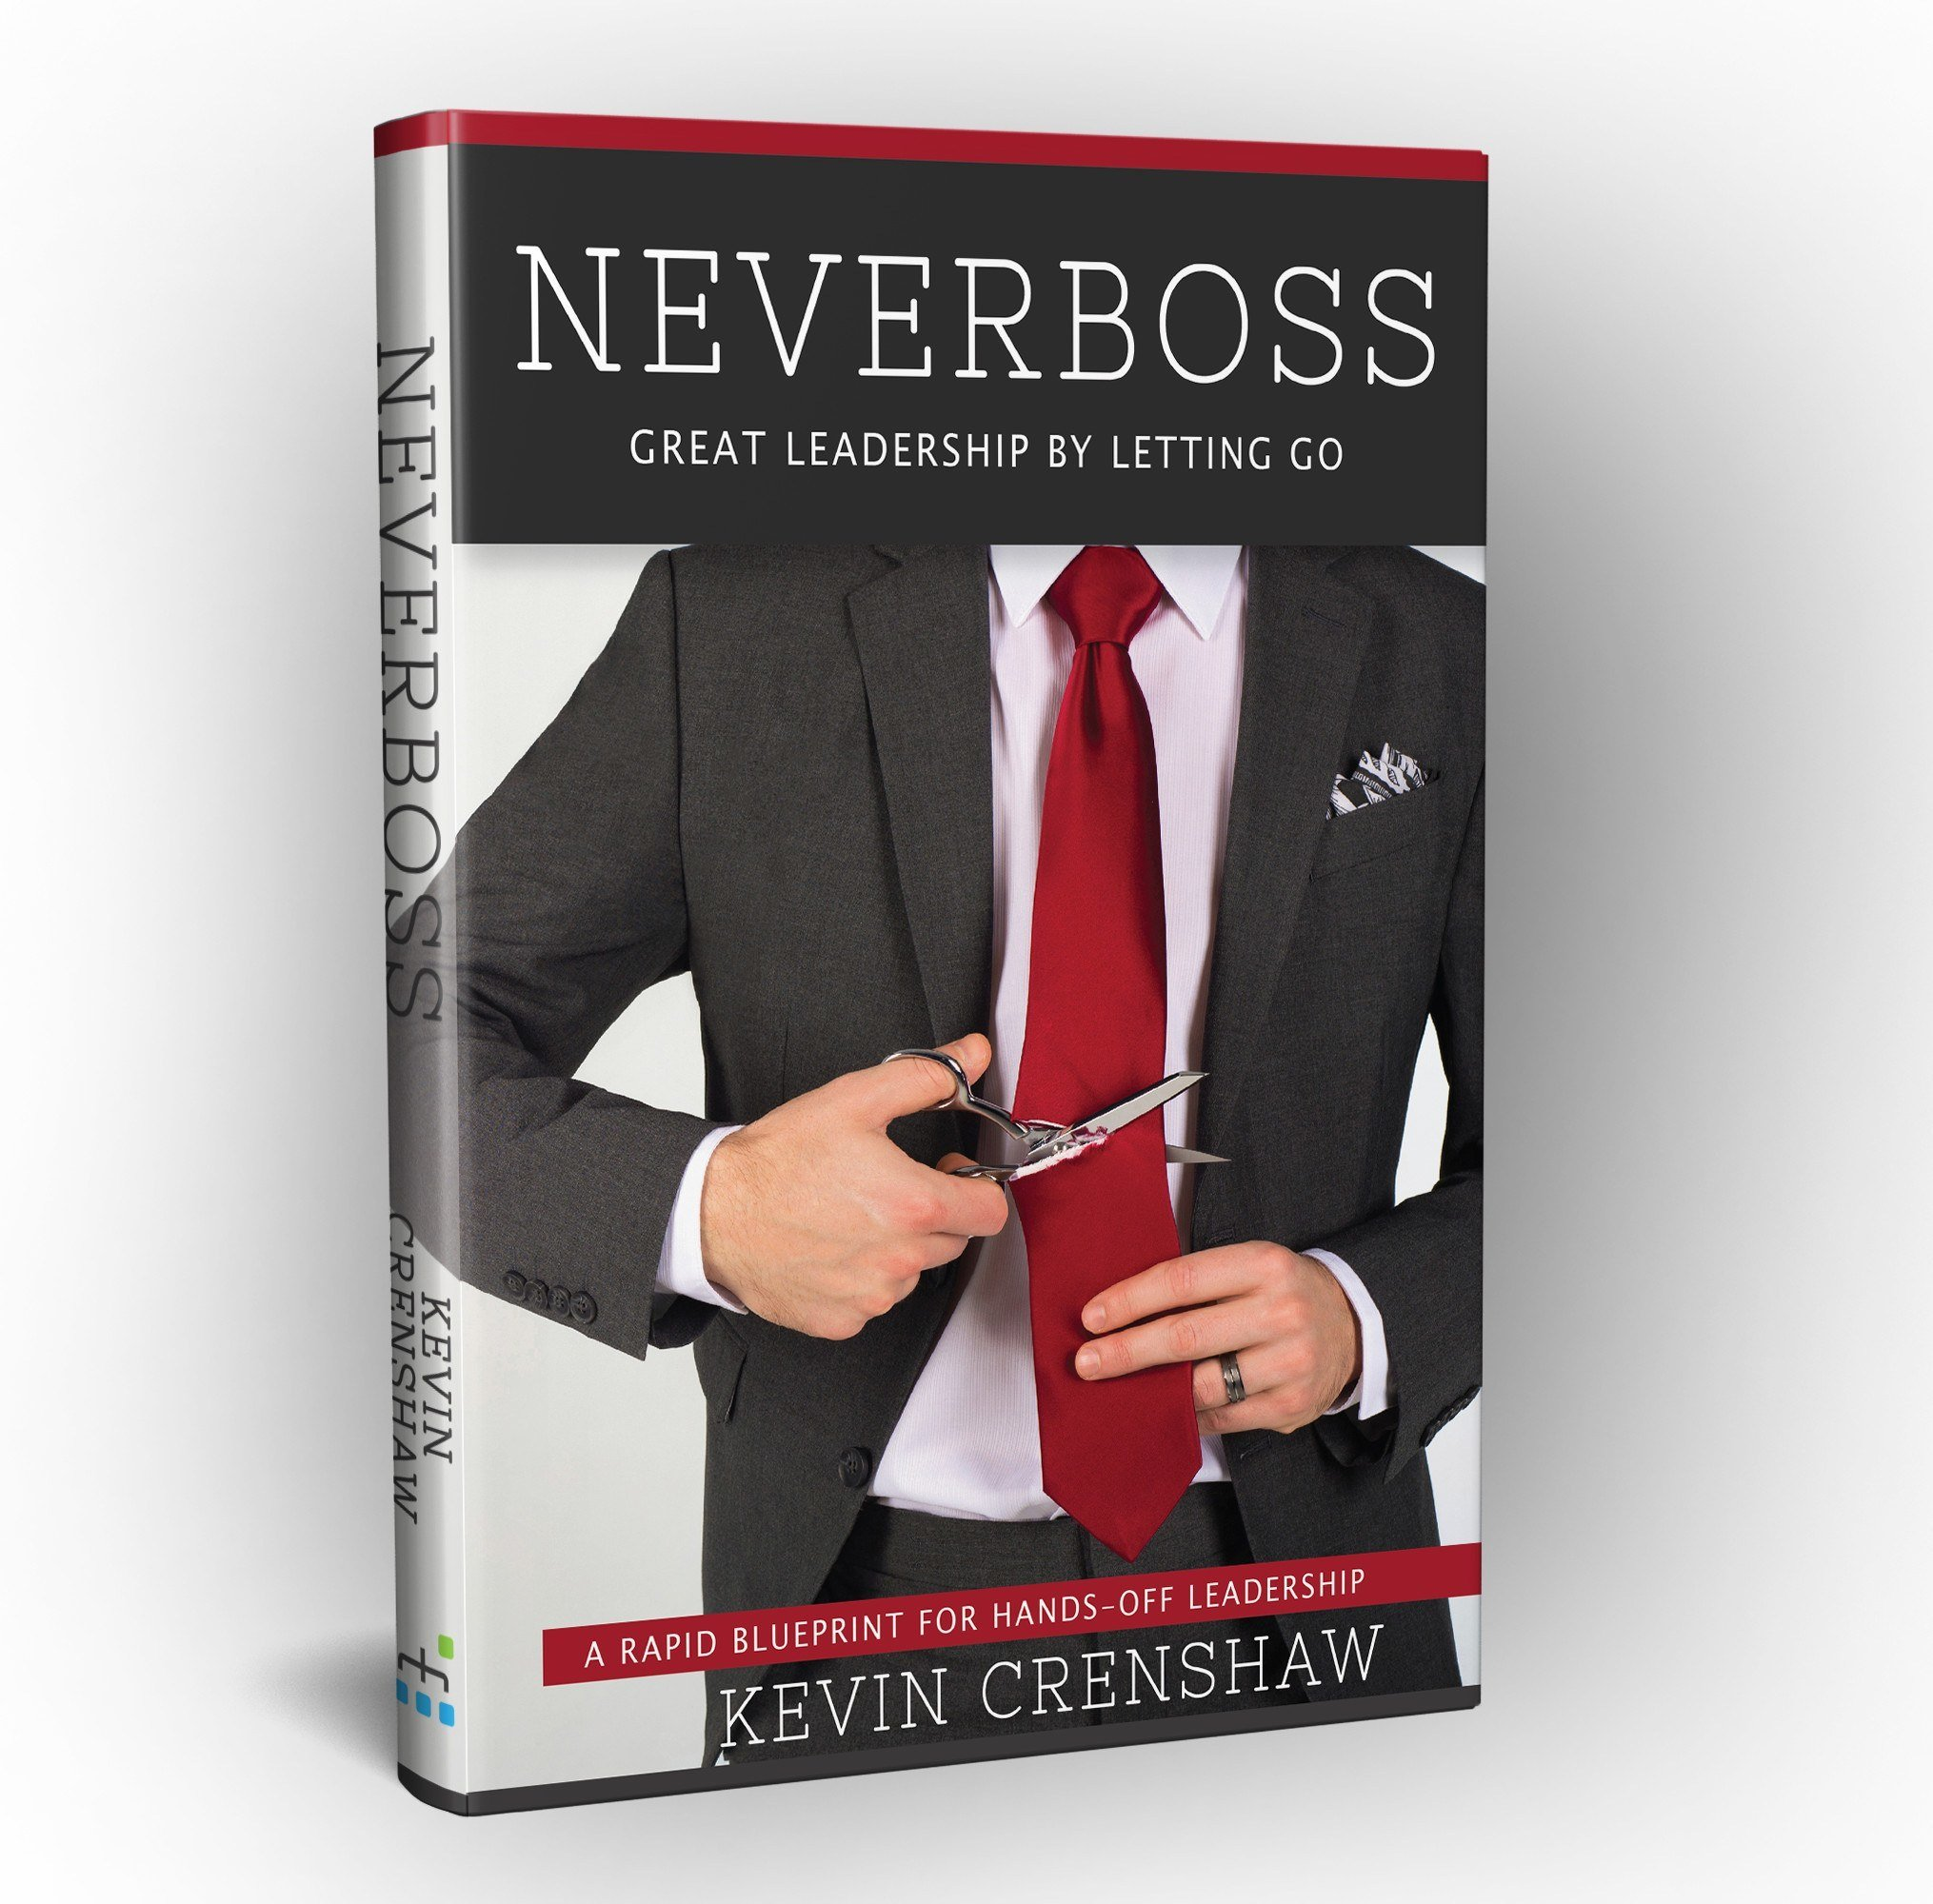 Neverboss Hardcover Book